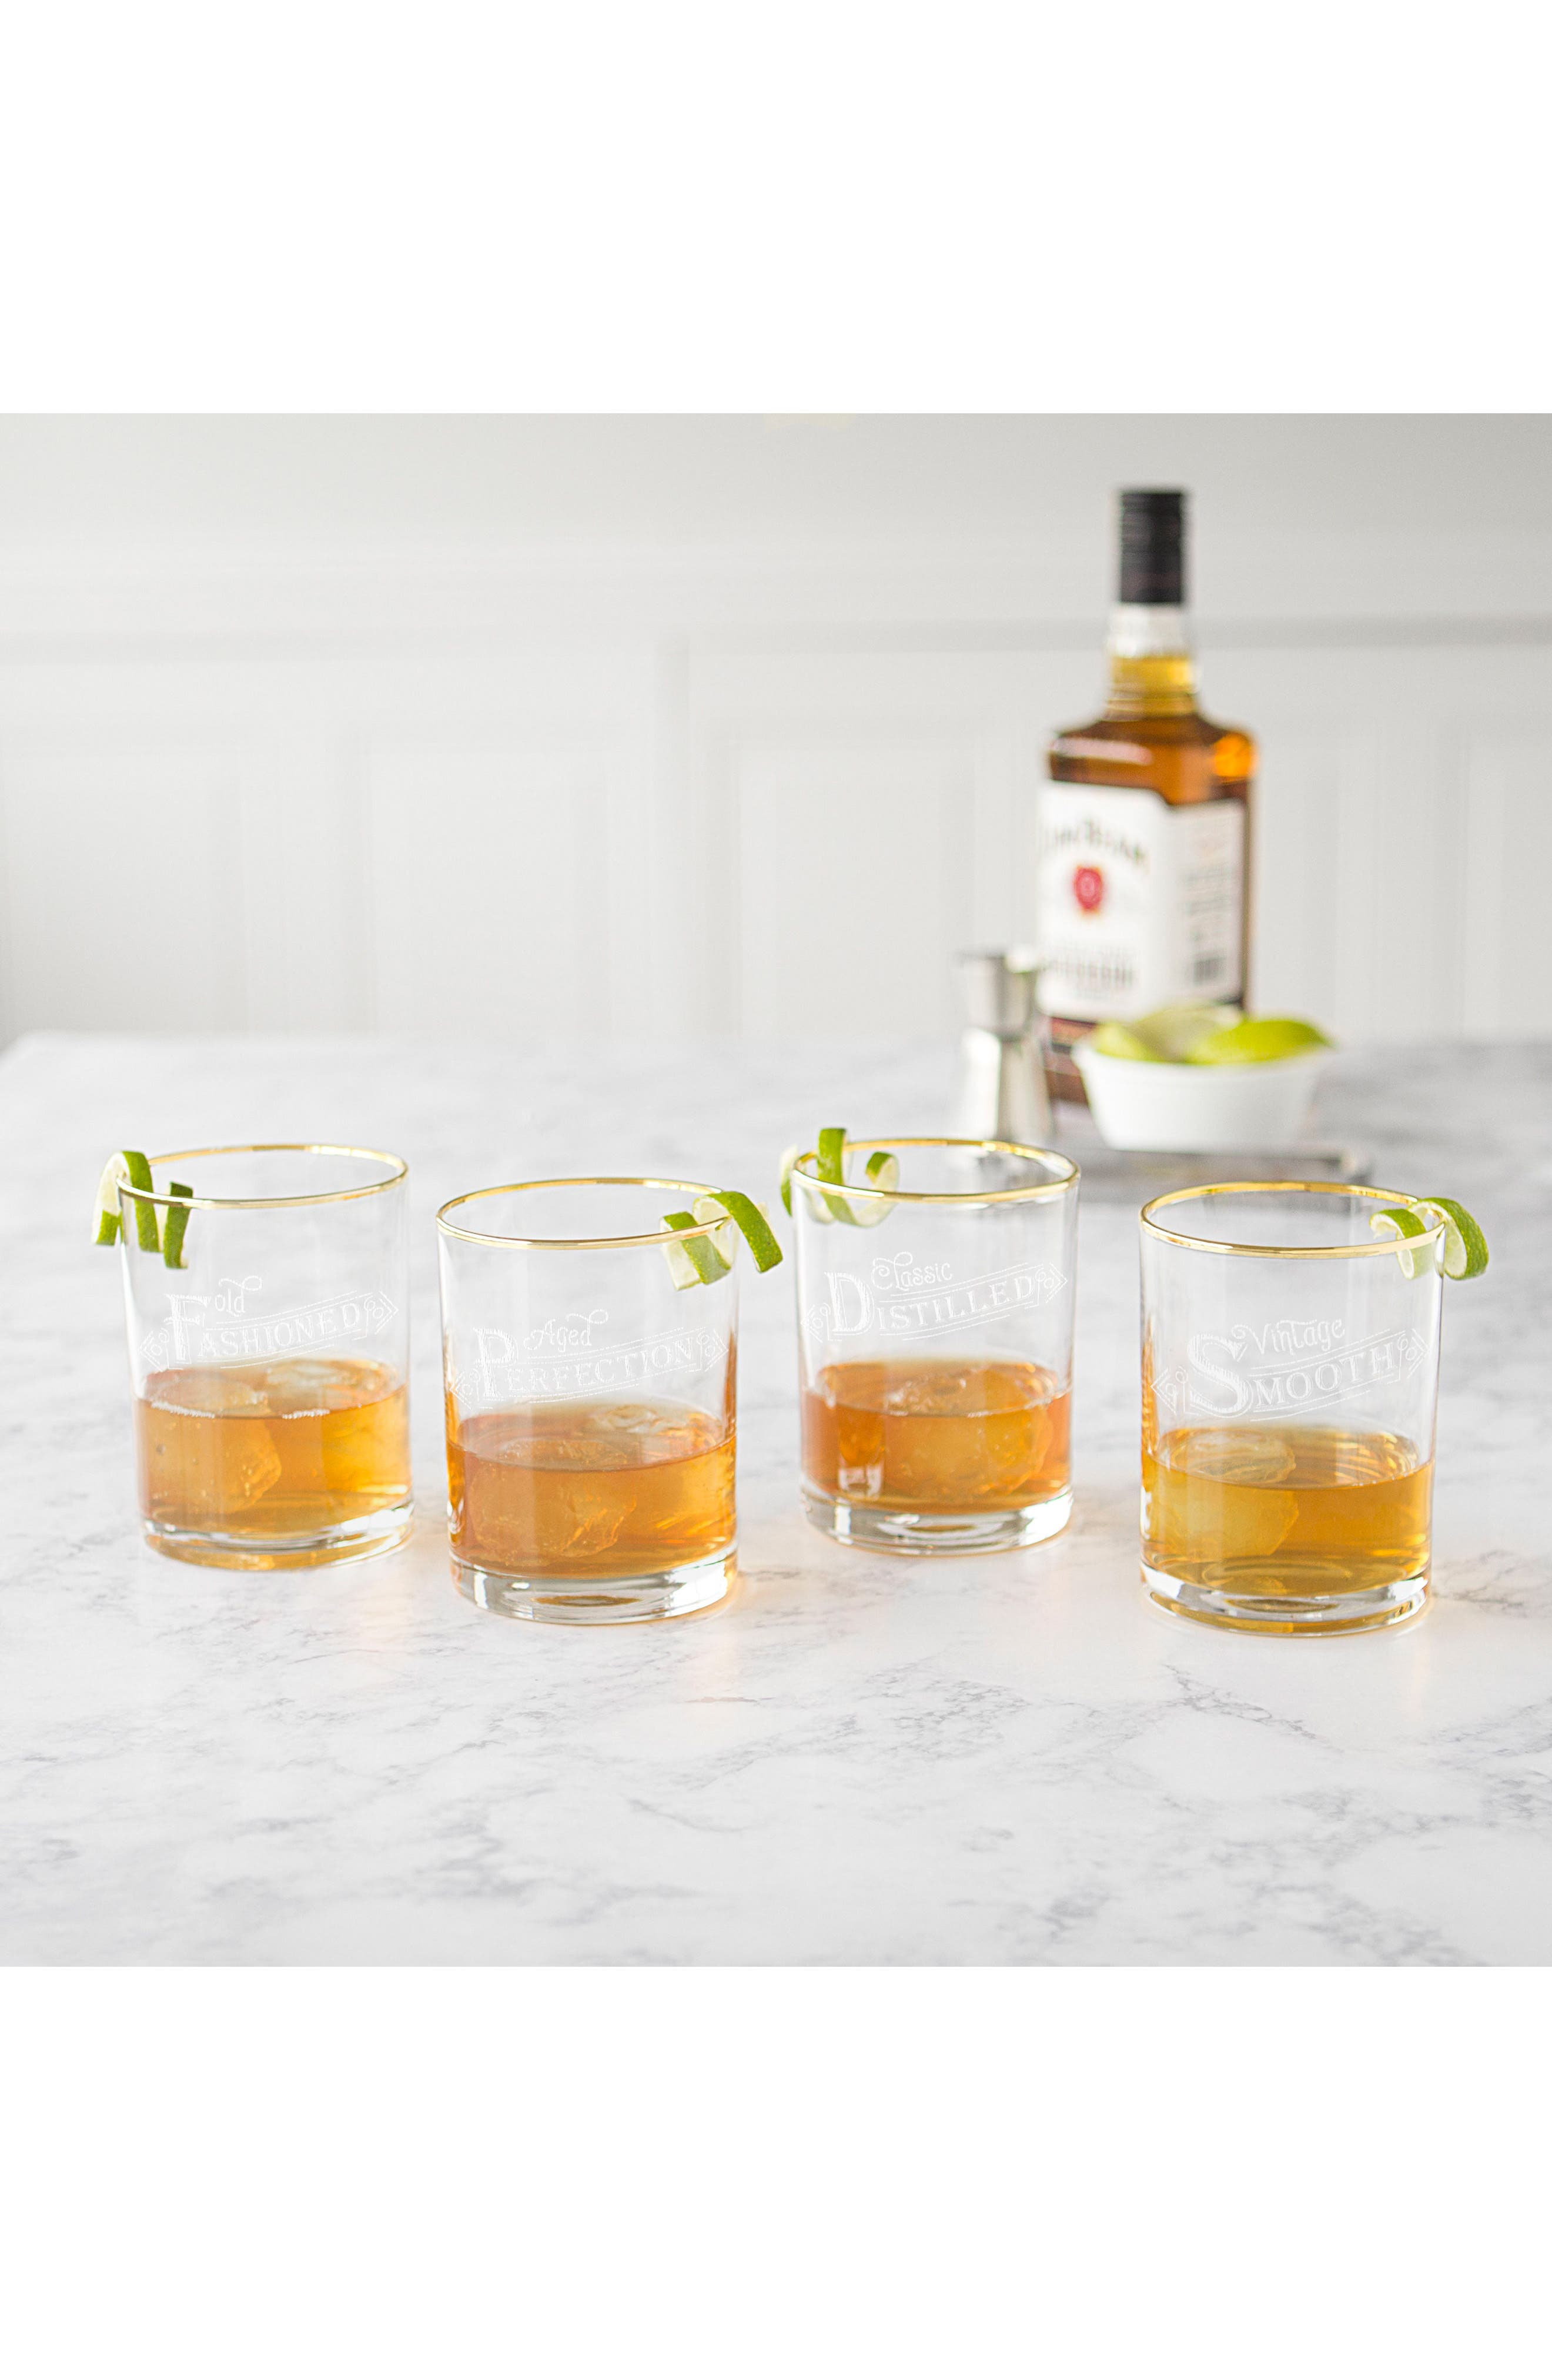 Set of 4 Gold Rim Old Fashioned Whiskey Glasses,                             Alternate thumbnail 6, color,                             110